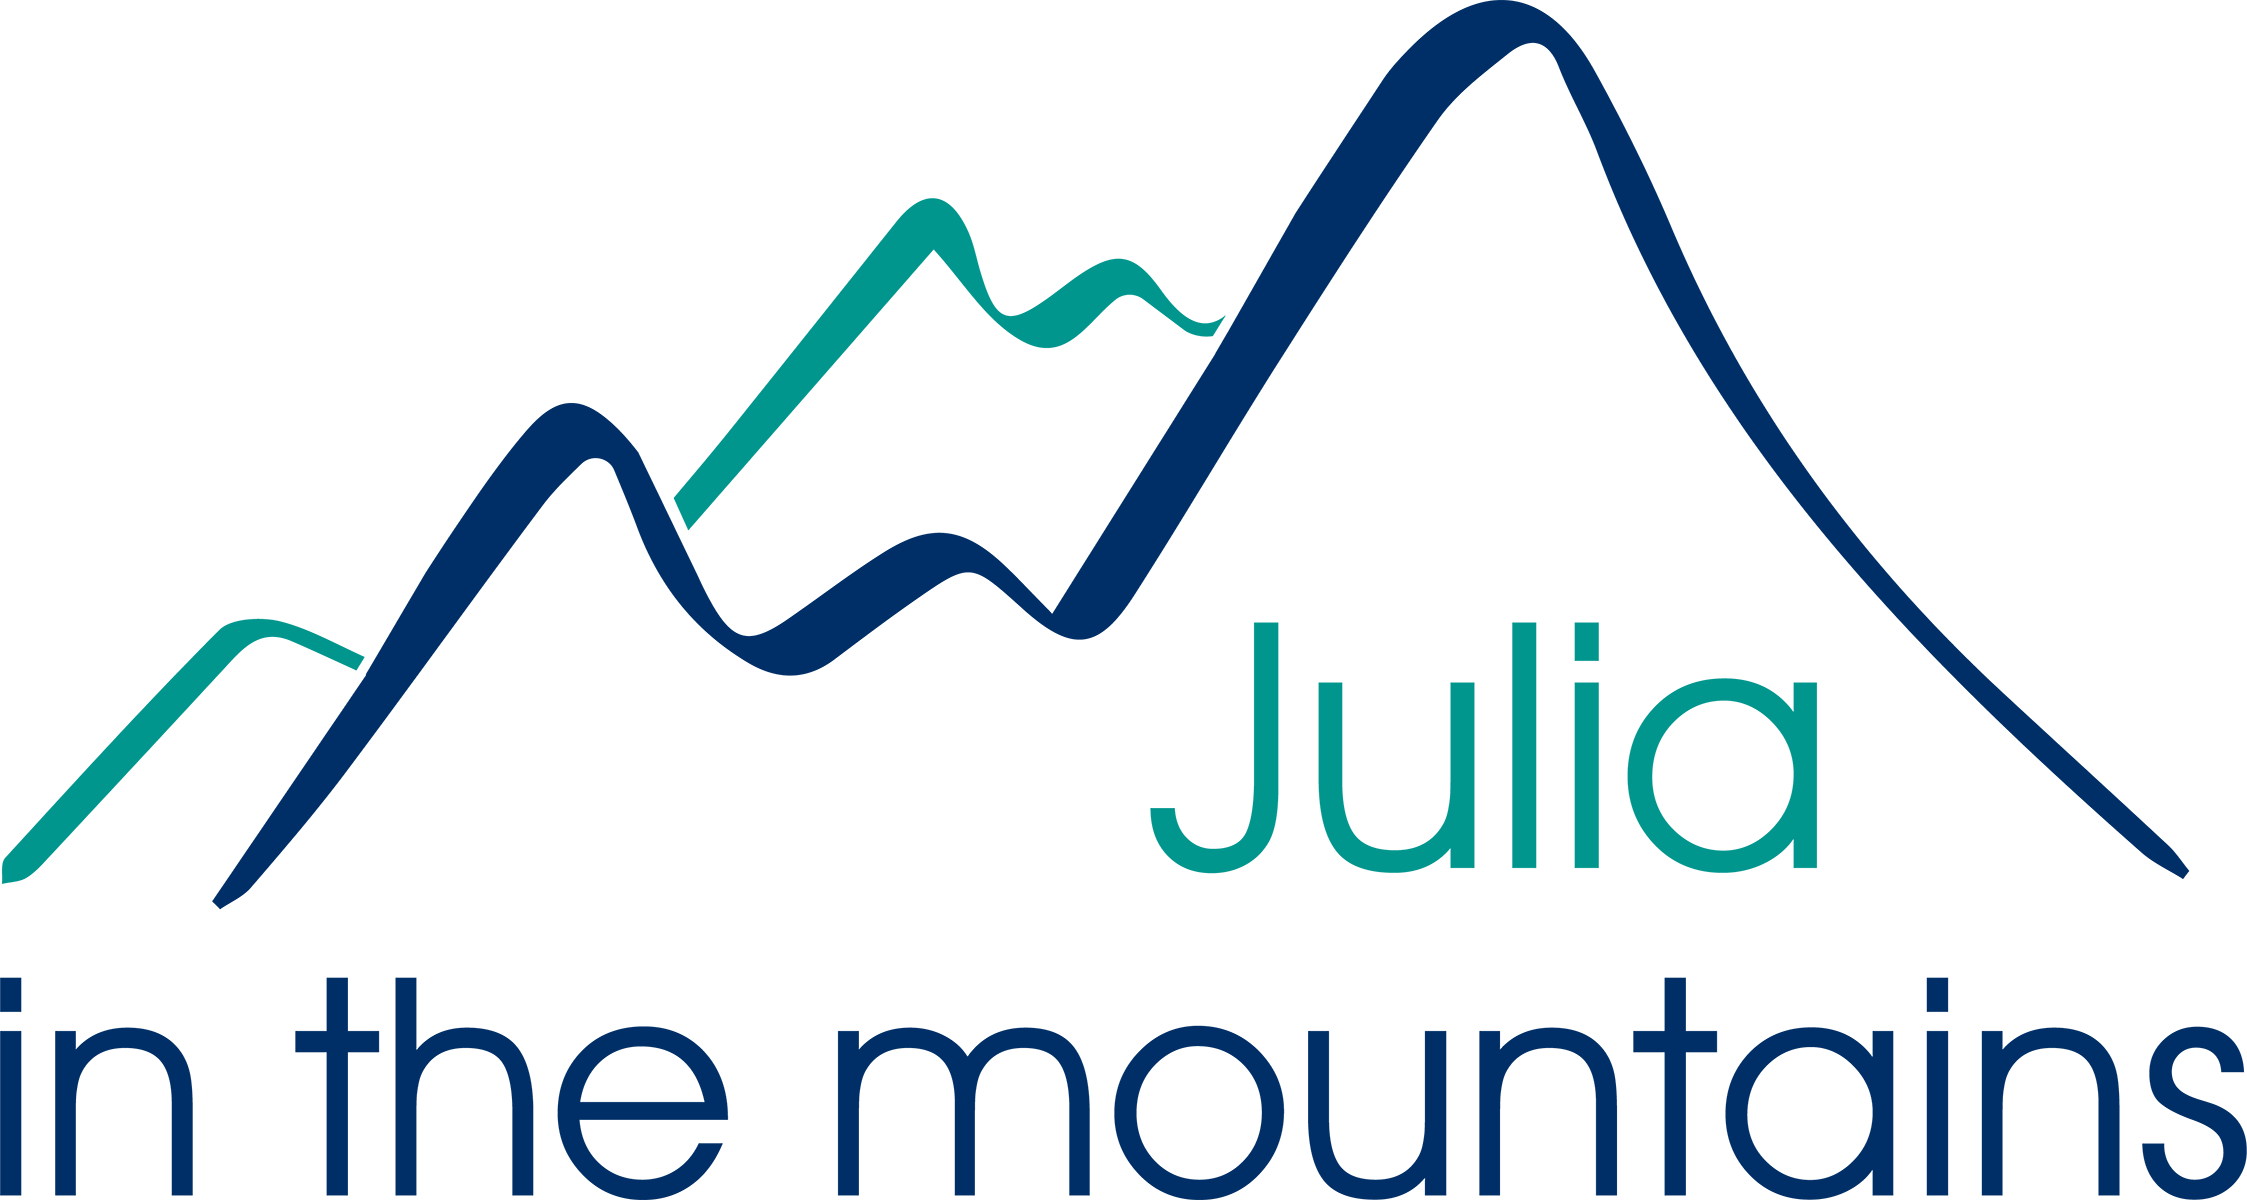 Julia in the mountains